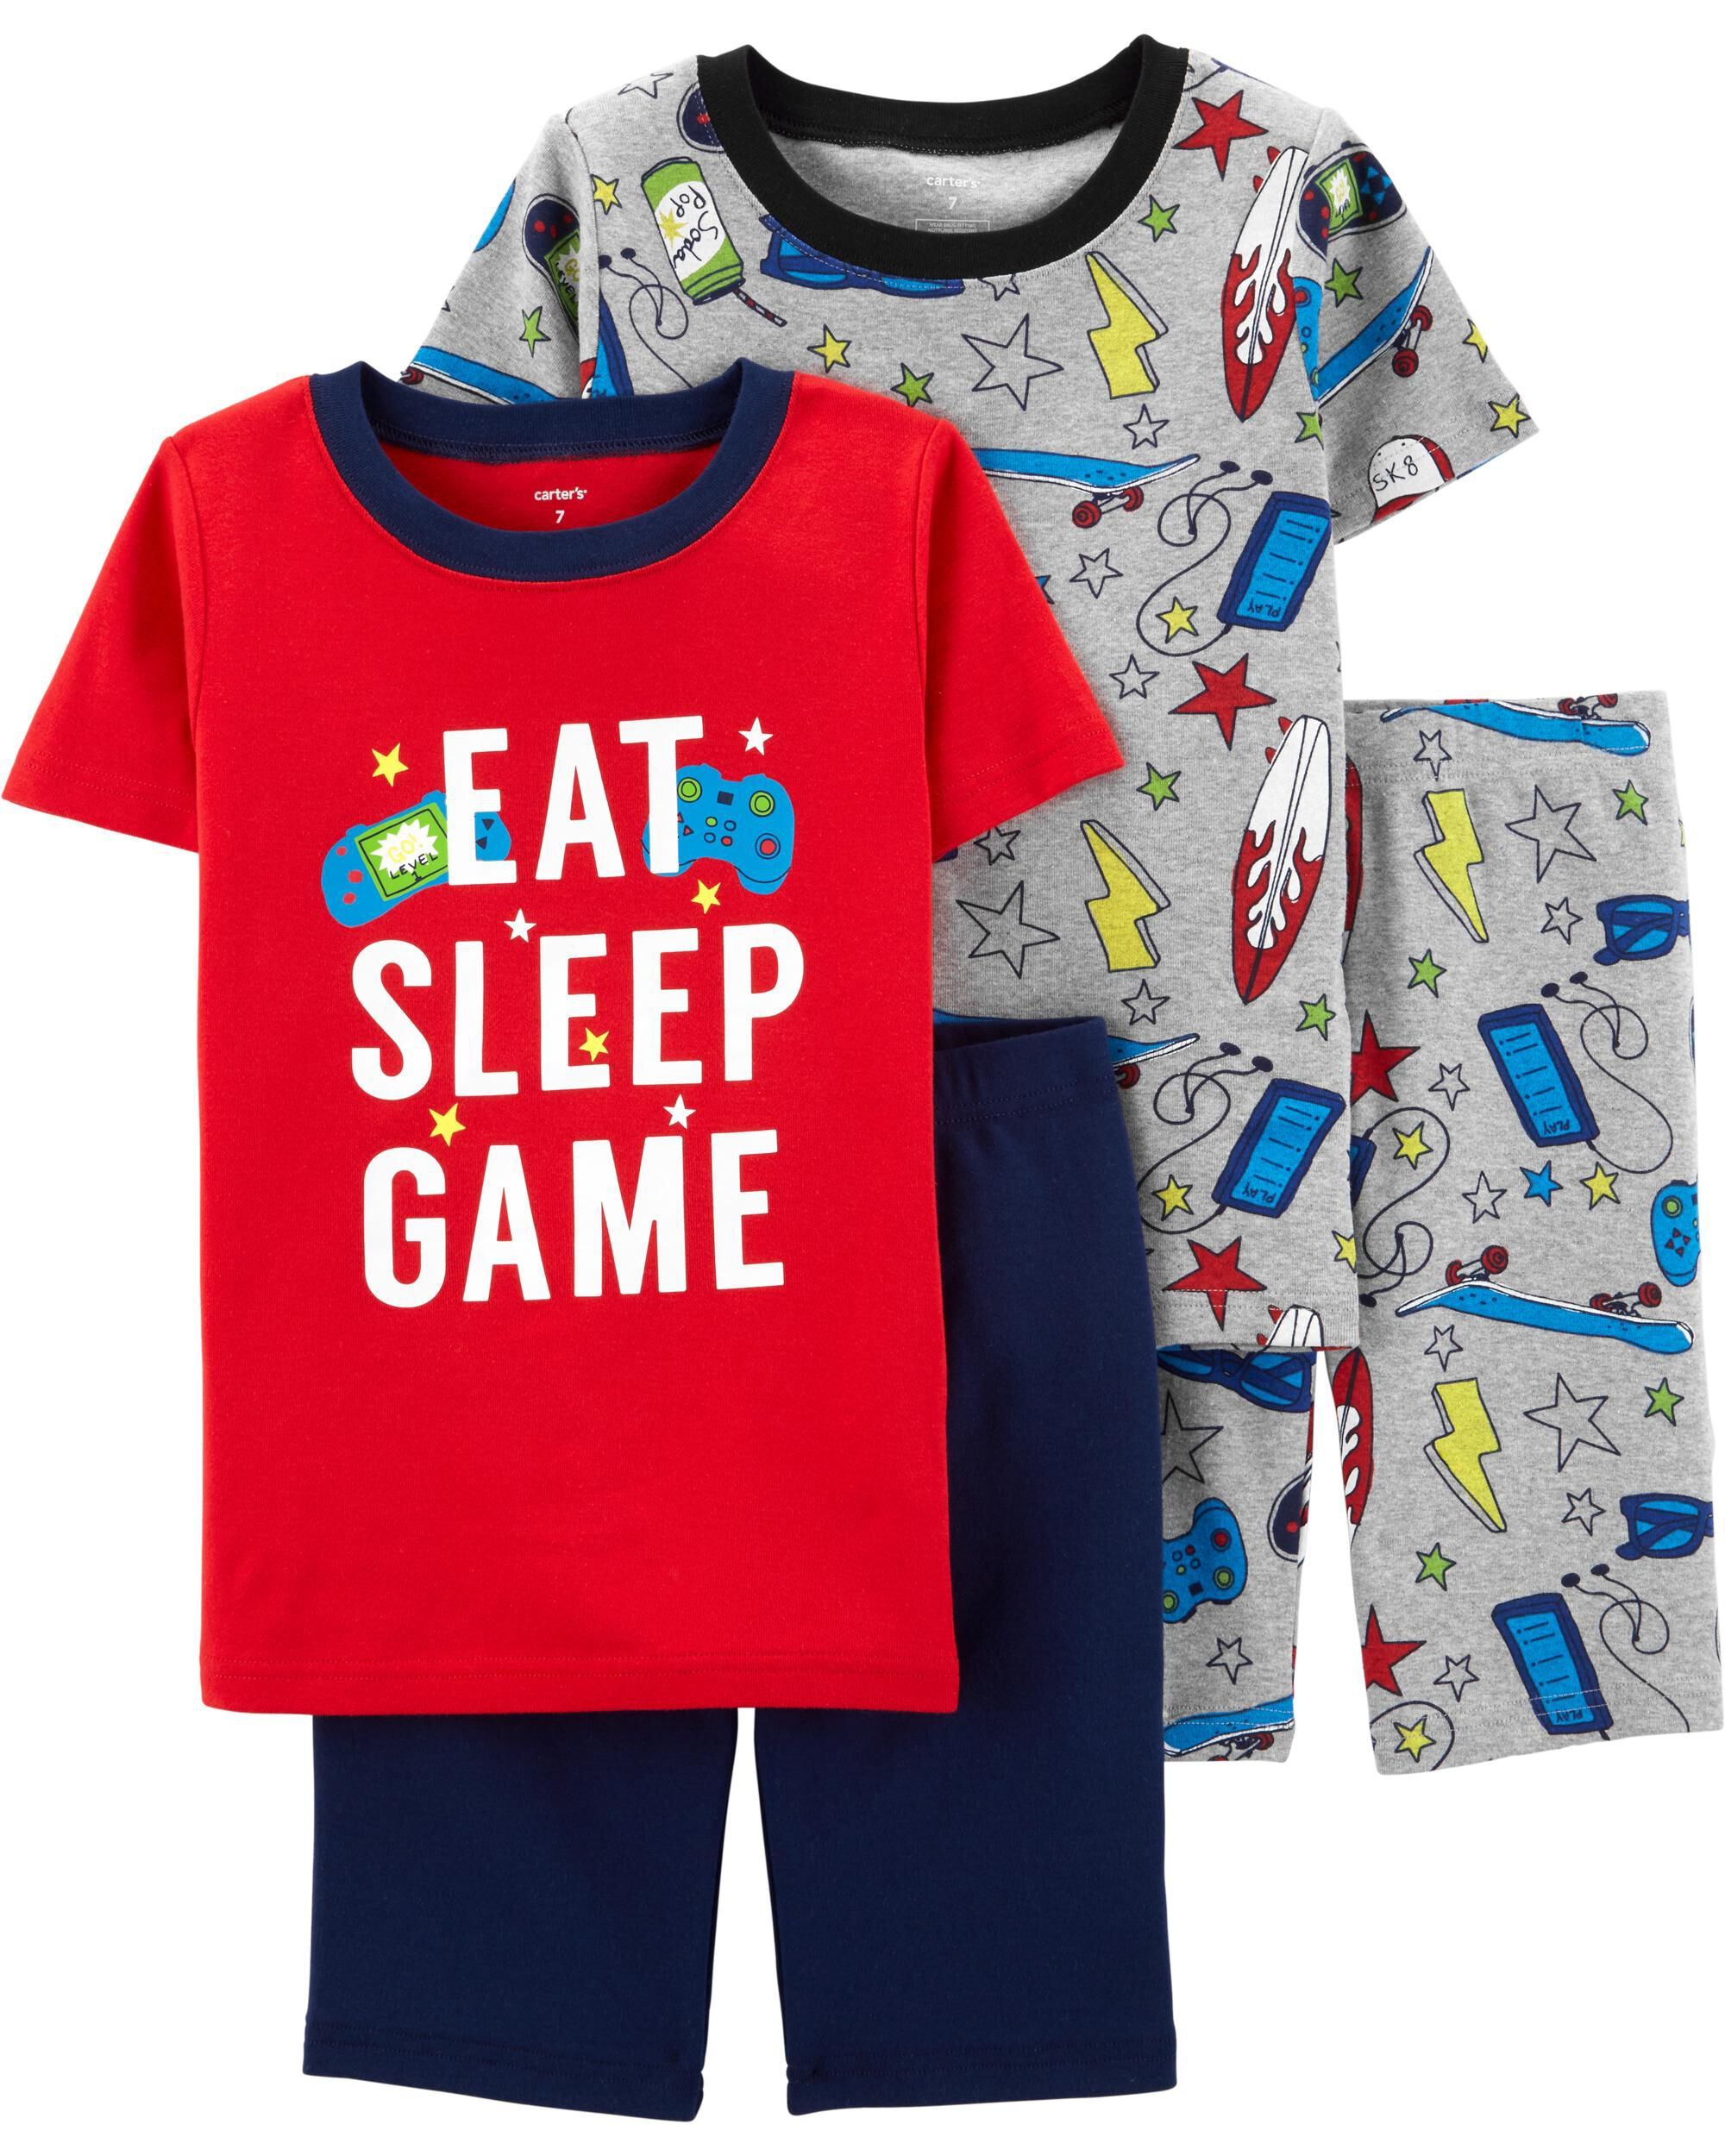 Clothing Sets New Style Toddler Kids Baby Boys Pajamas Cartoon Dinosaur Print Tops Shorts Outfits Set Childrens Clothing Outfits Costumes Selling Well All Over The World Mother & Kids